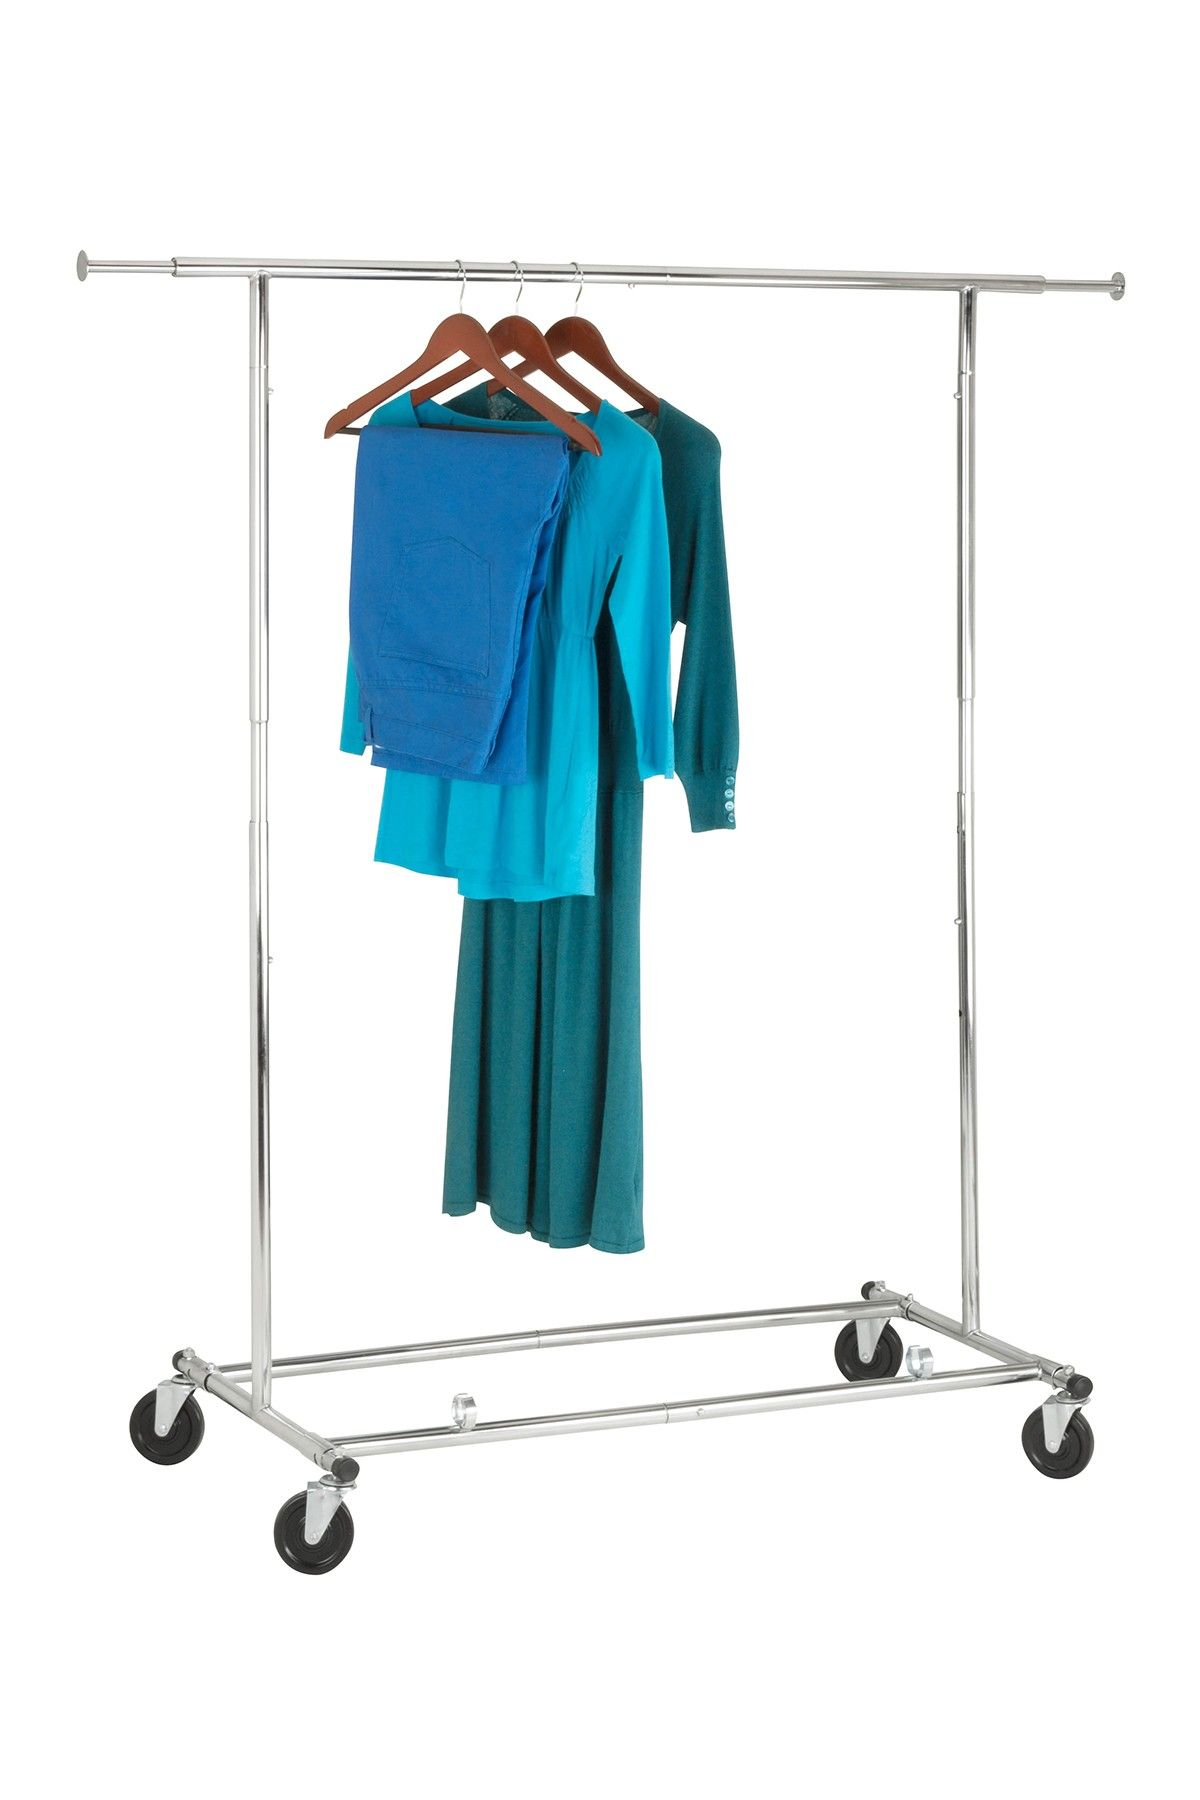 Honey-Can-Do Chrome Collapsible Garment Rack | Bed Bath Bedrooms ...